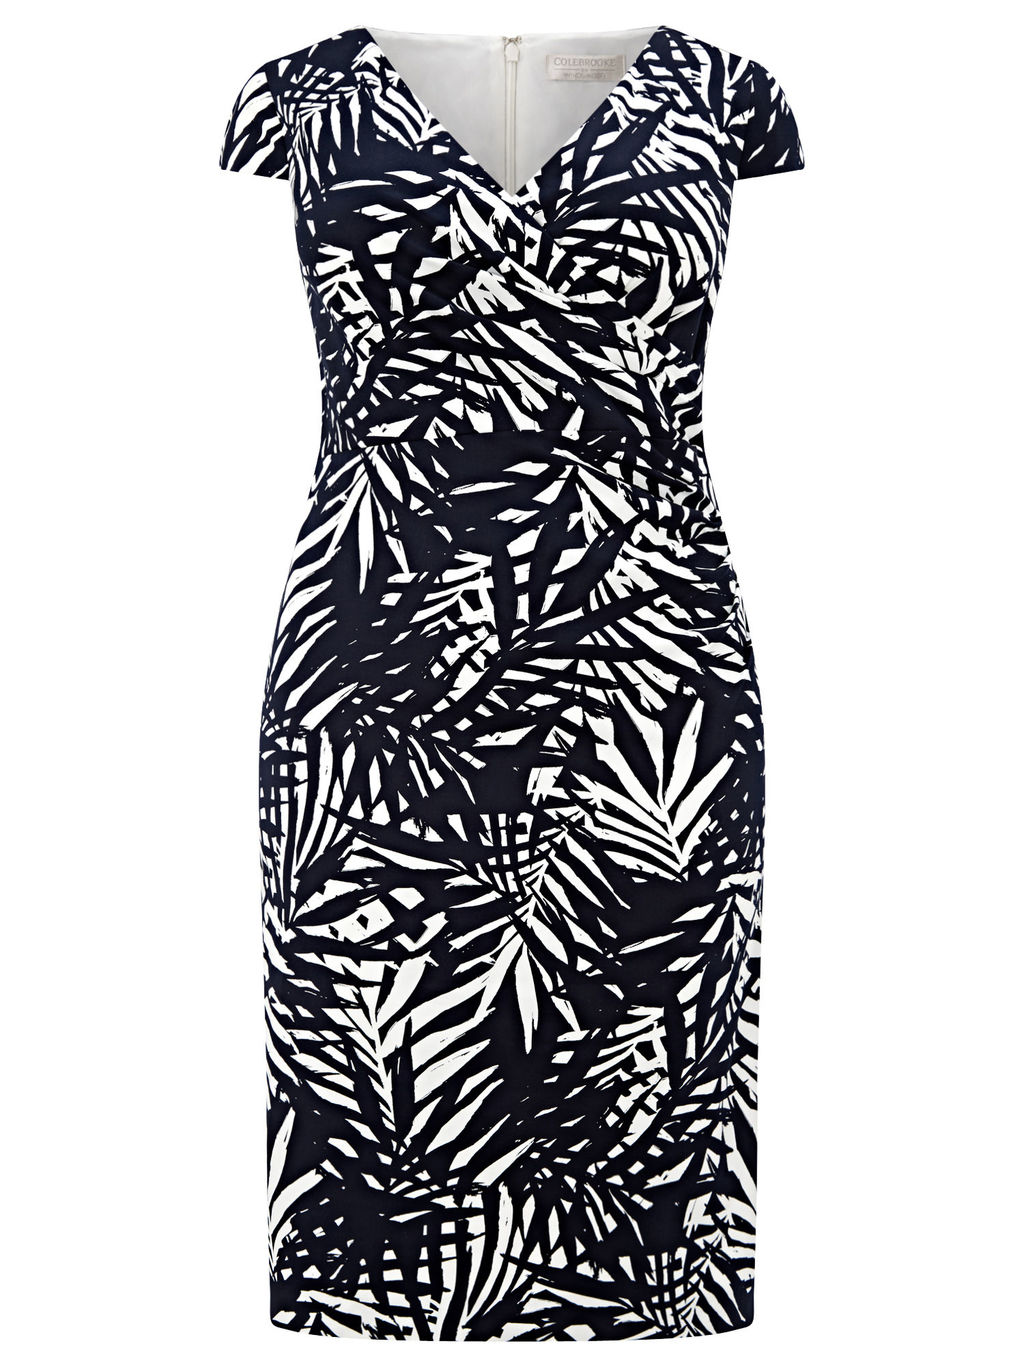 Palm Leaf Print Dress, Navy/White - style: shift; neckline: low v-neck; sleeve style: capped; fit: tailored/fitted; secondary colour: white; predominant colour: navy; length: on the knee; fibres: cotton - stretch; occasions: occasion; sleeve length: short sleeve; texture group: jersey - clingy; pattern type: fabric; pattern size: big & busy; pattern: florals; season: s/s 2016; wardrobe: event